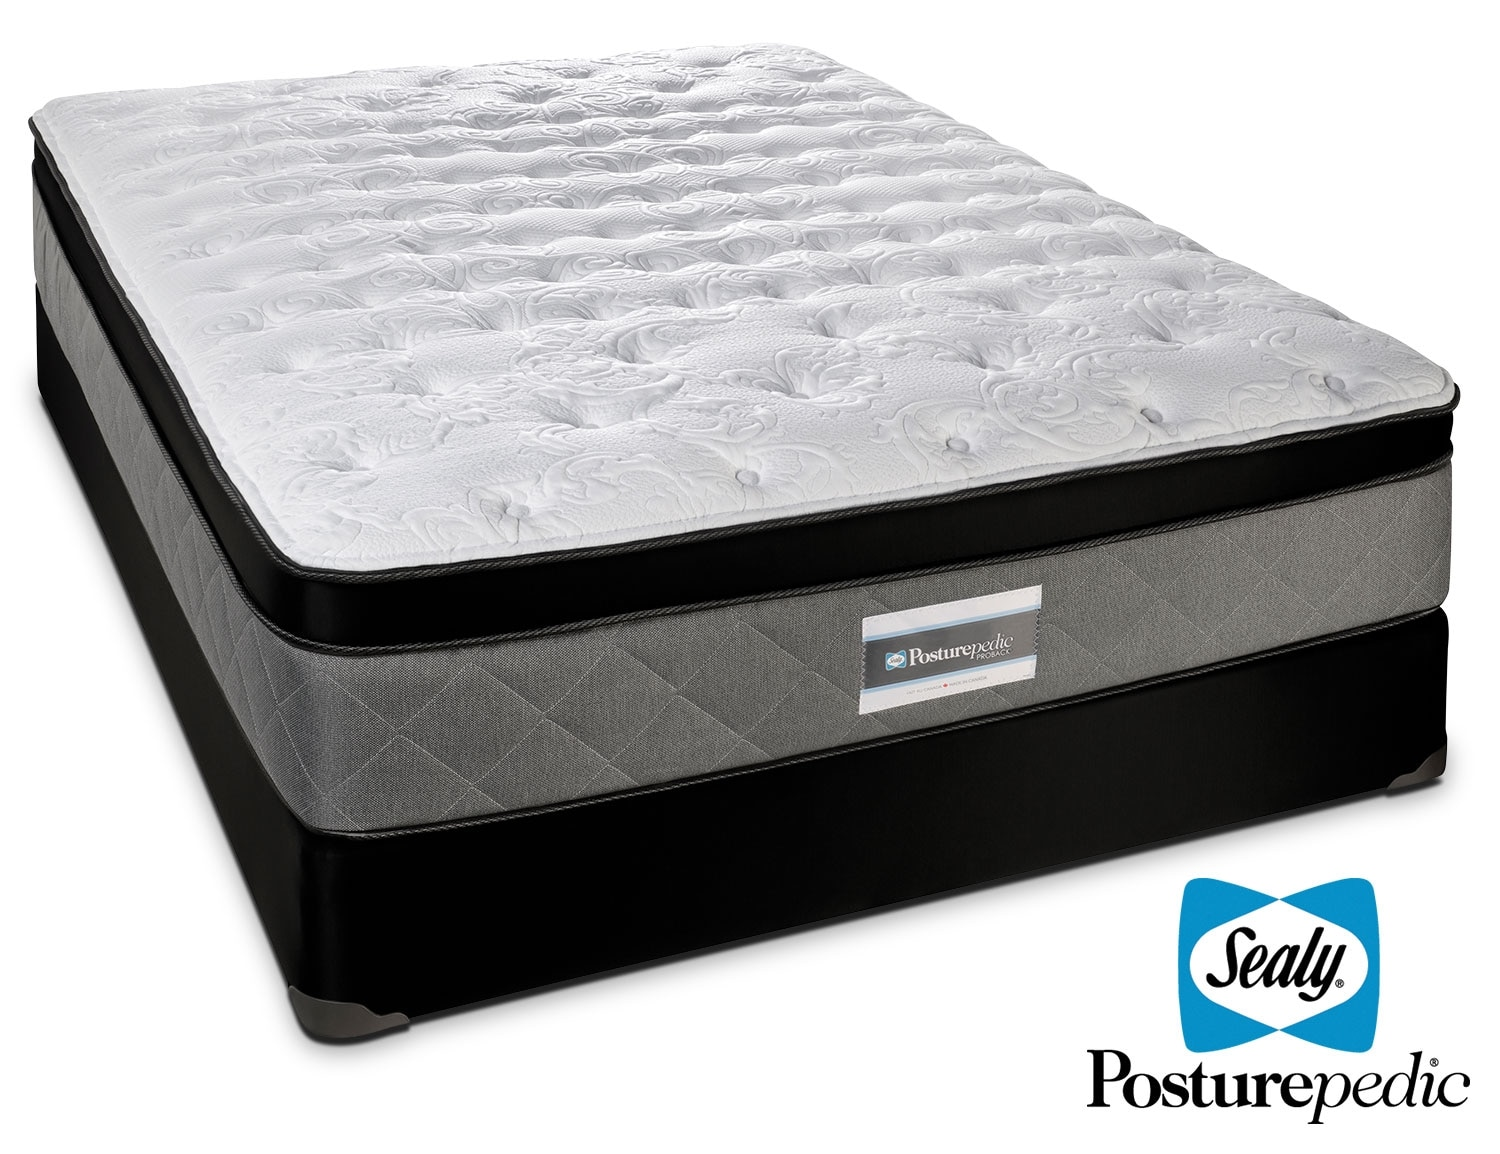 Mattresses and Bedding - Sealy Scripture Firm Queen Mattress/Boxspring Set